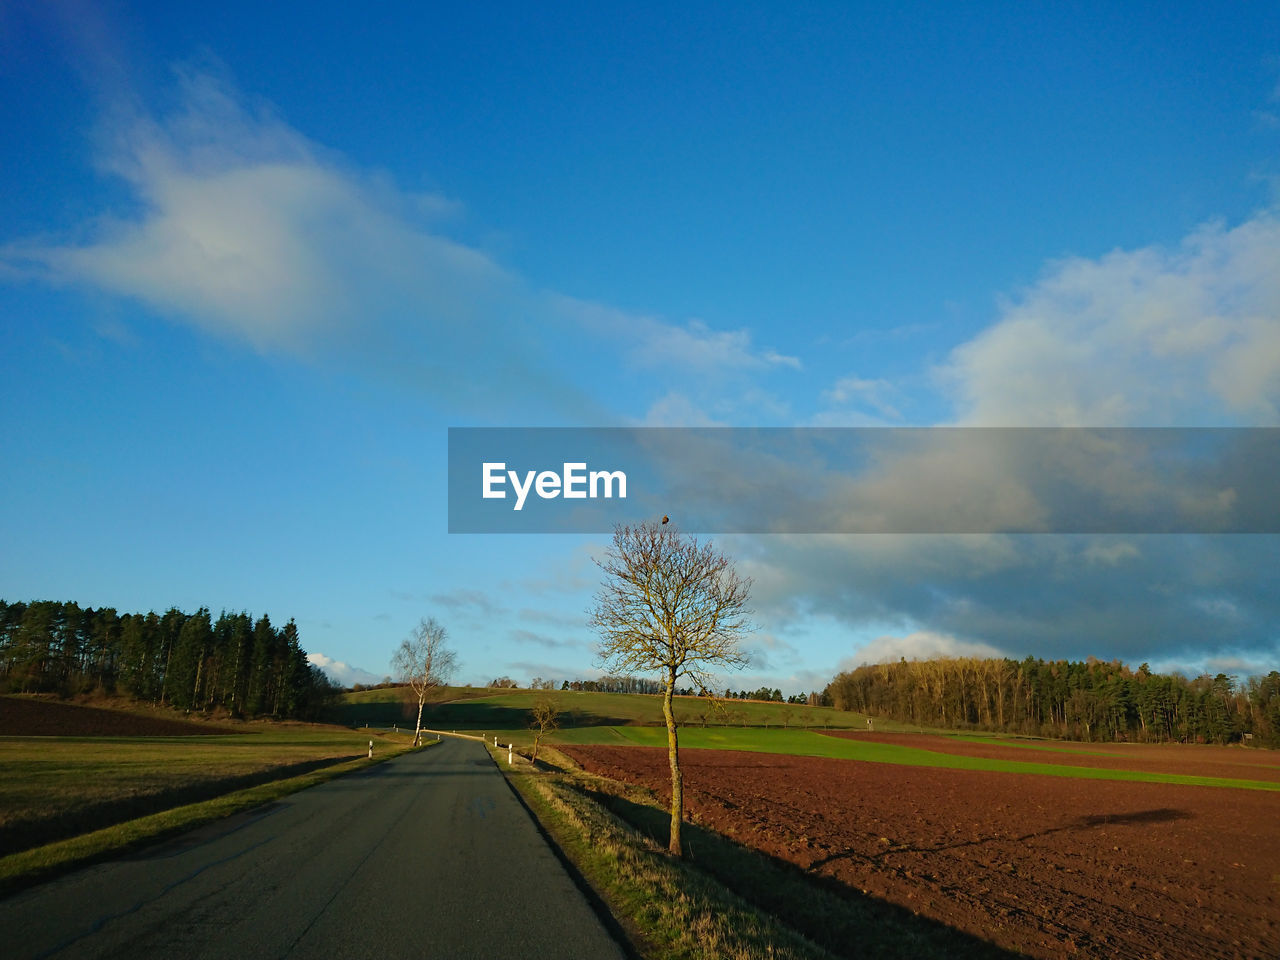 sky, road, cloud - sky, transportation, environment, tree, landscape, direction, land, nature, plant, tranquility, tranquil scene, field, beauty in nature, the way forward, scenics - nature, day, no people, country, diminishing perspective, outdoors